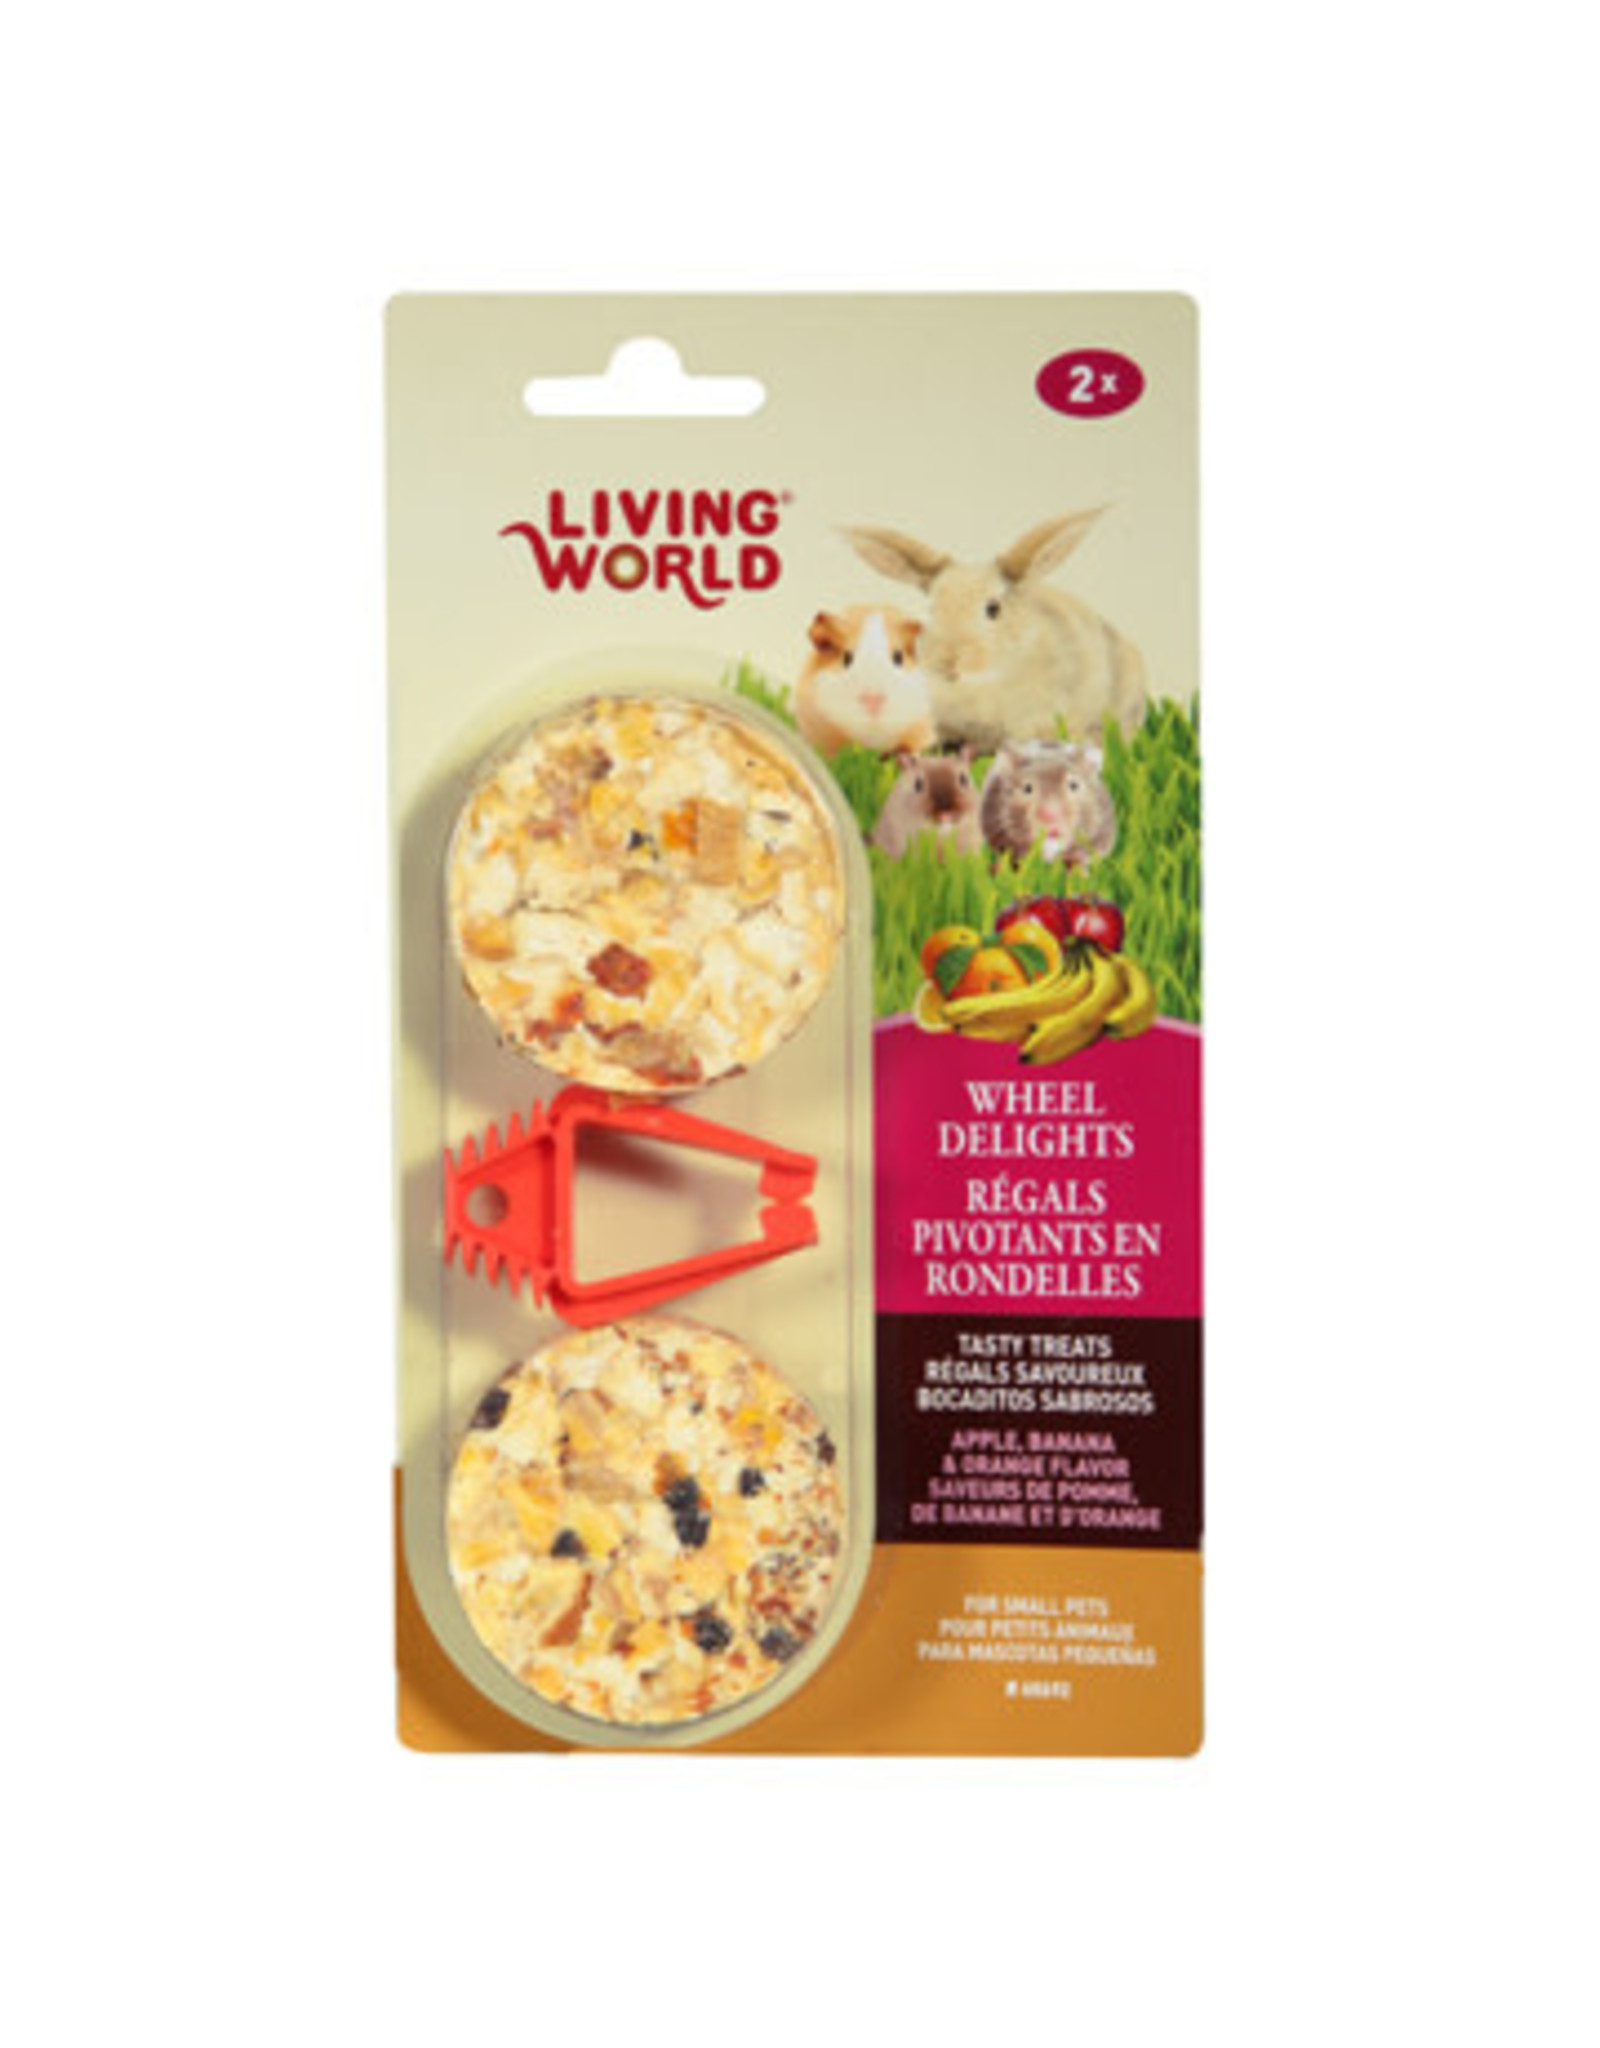 Living World Living World Wheel Delights - Apple/Banana/Orange - 2-pack